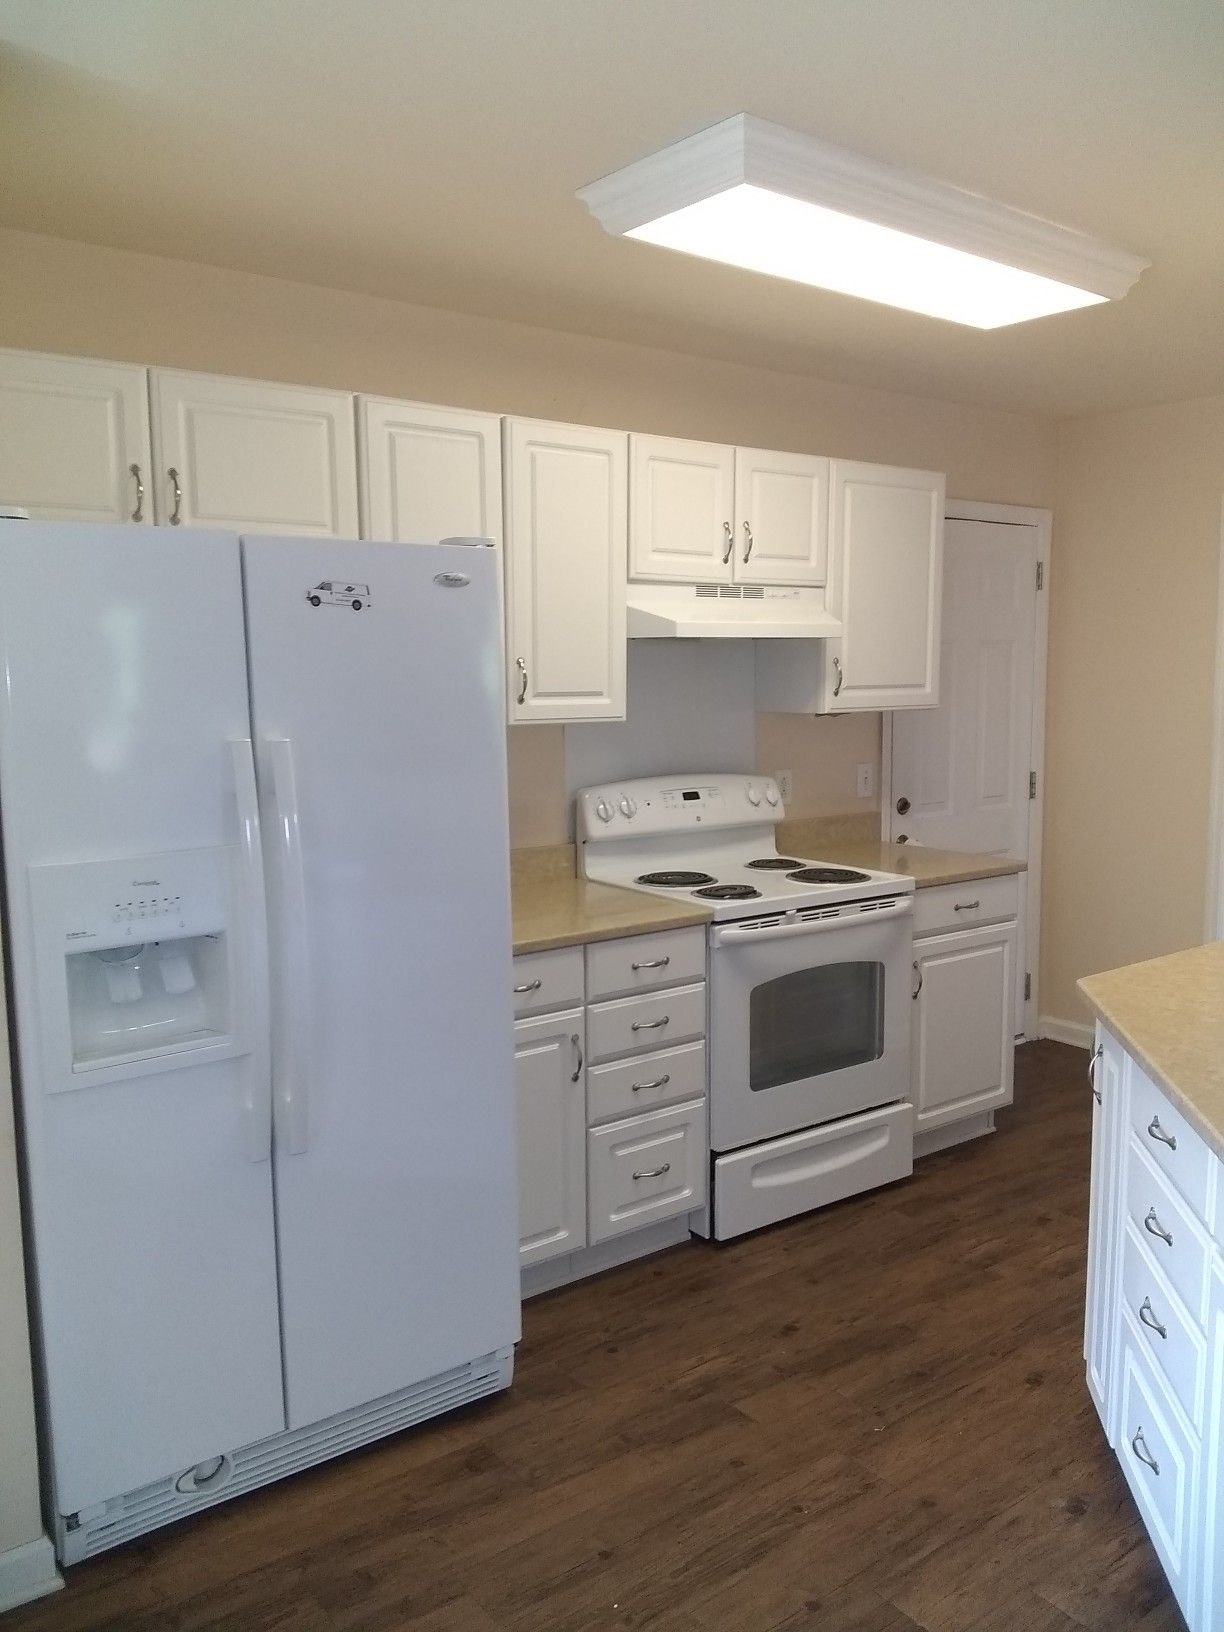 Move In Cleaning Complete Move In Cleaning Cleaning Service Kitchen Cabinets